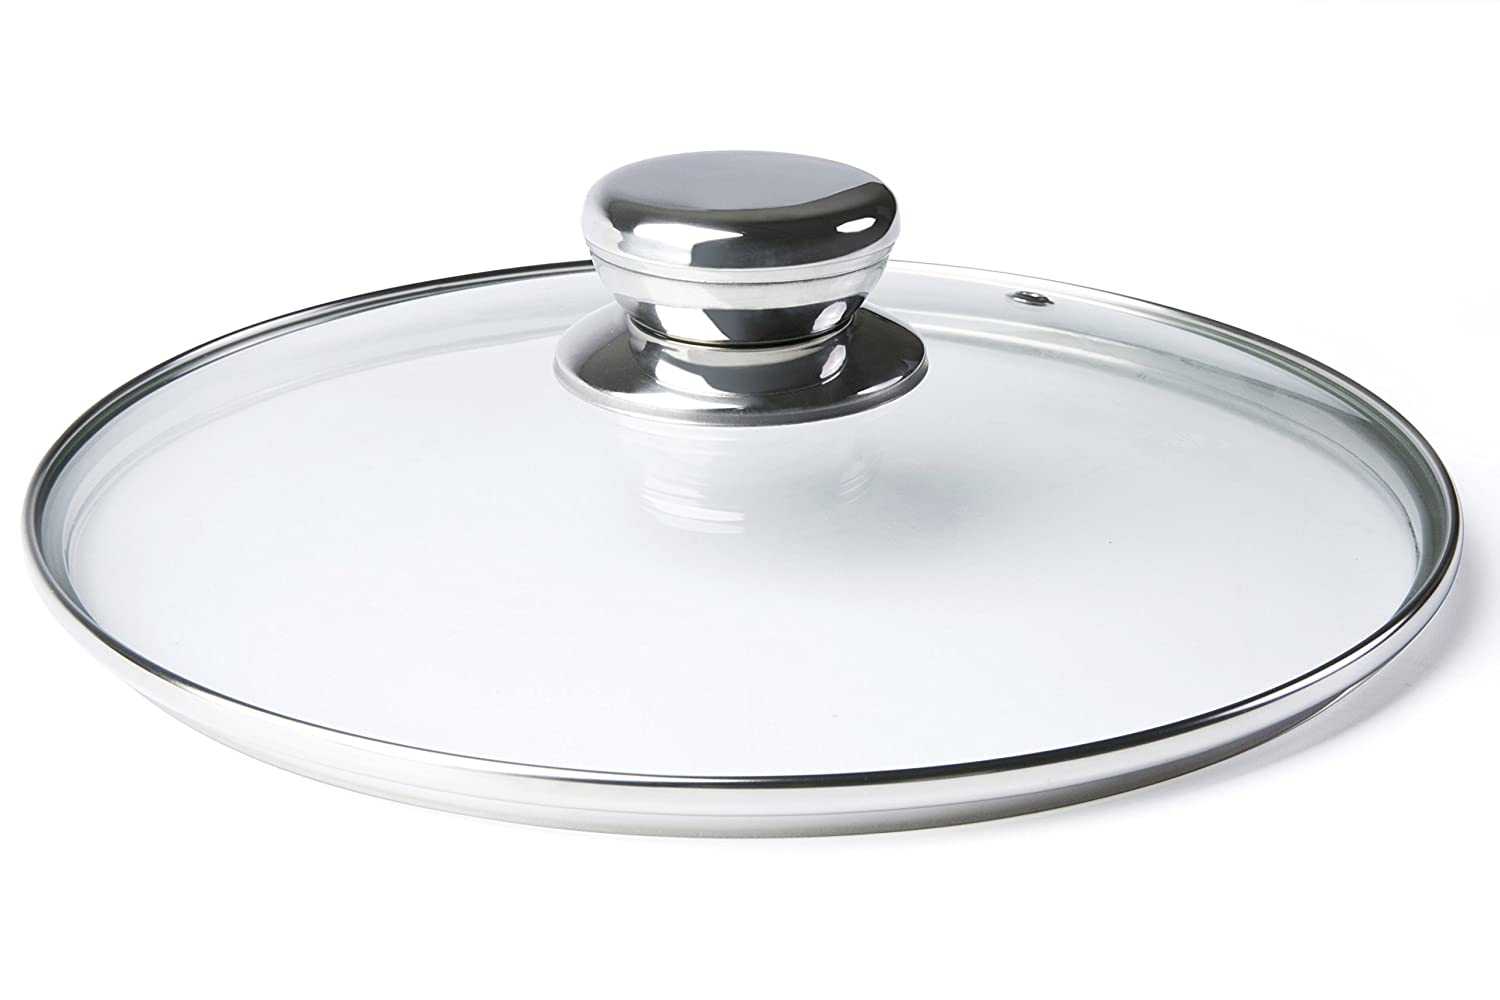 ETHDA Tempered Glass Lid, Fits Cookware of 8 inch,Universal Replacement for Frying Pans,Pots,Cast Iron Skillets,Woks, Instant Pots, Round, Clear, with Steam Vent, Stainless Steel Knob (20cm)